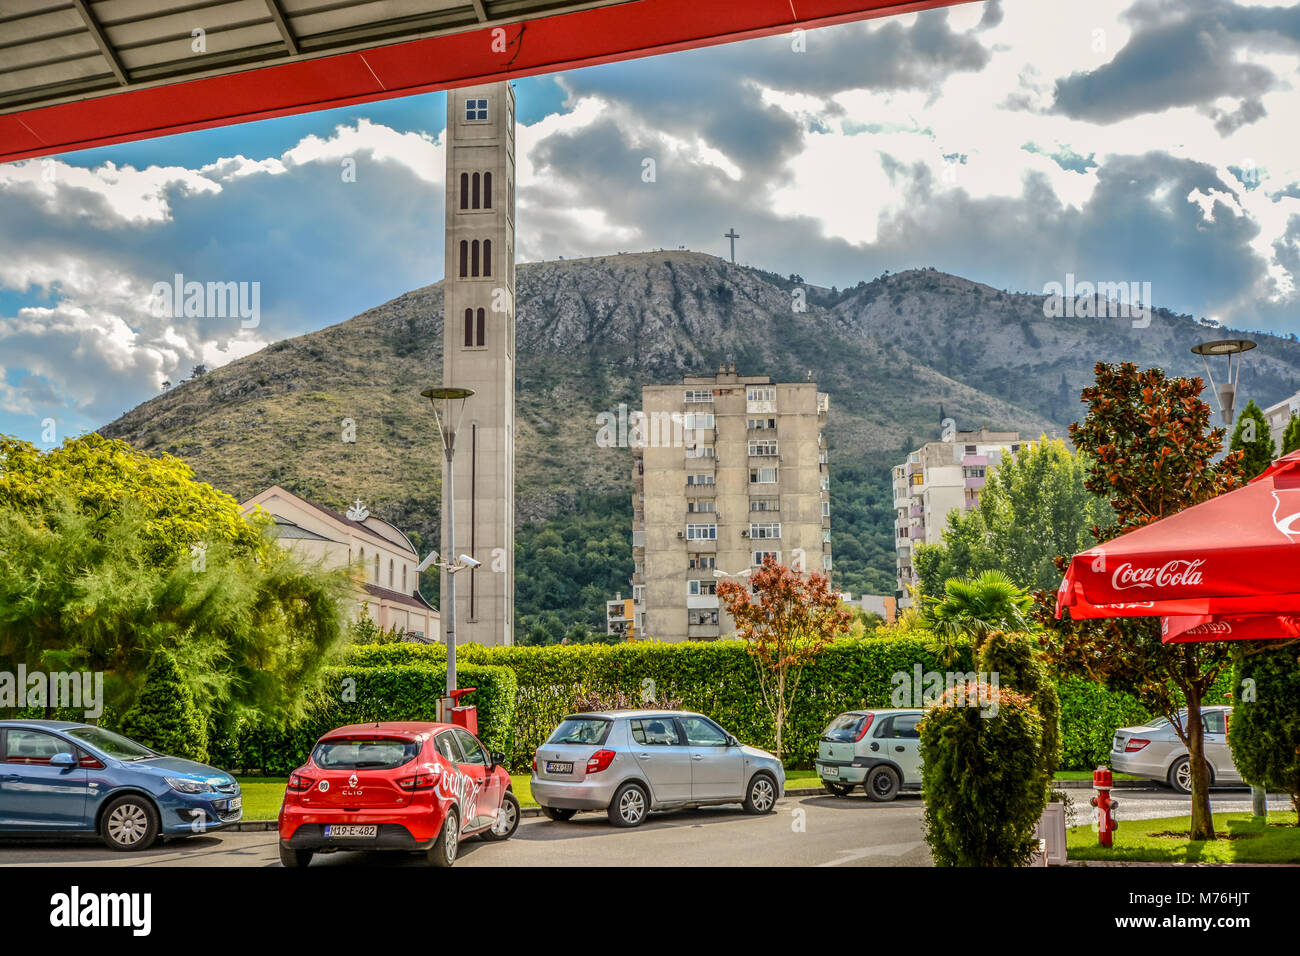 The cross over Mostar on Hum Hill stands atop the mountain overlooking Old Town Mostar, Bosnia Herzegovina - Stock Image